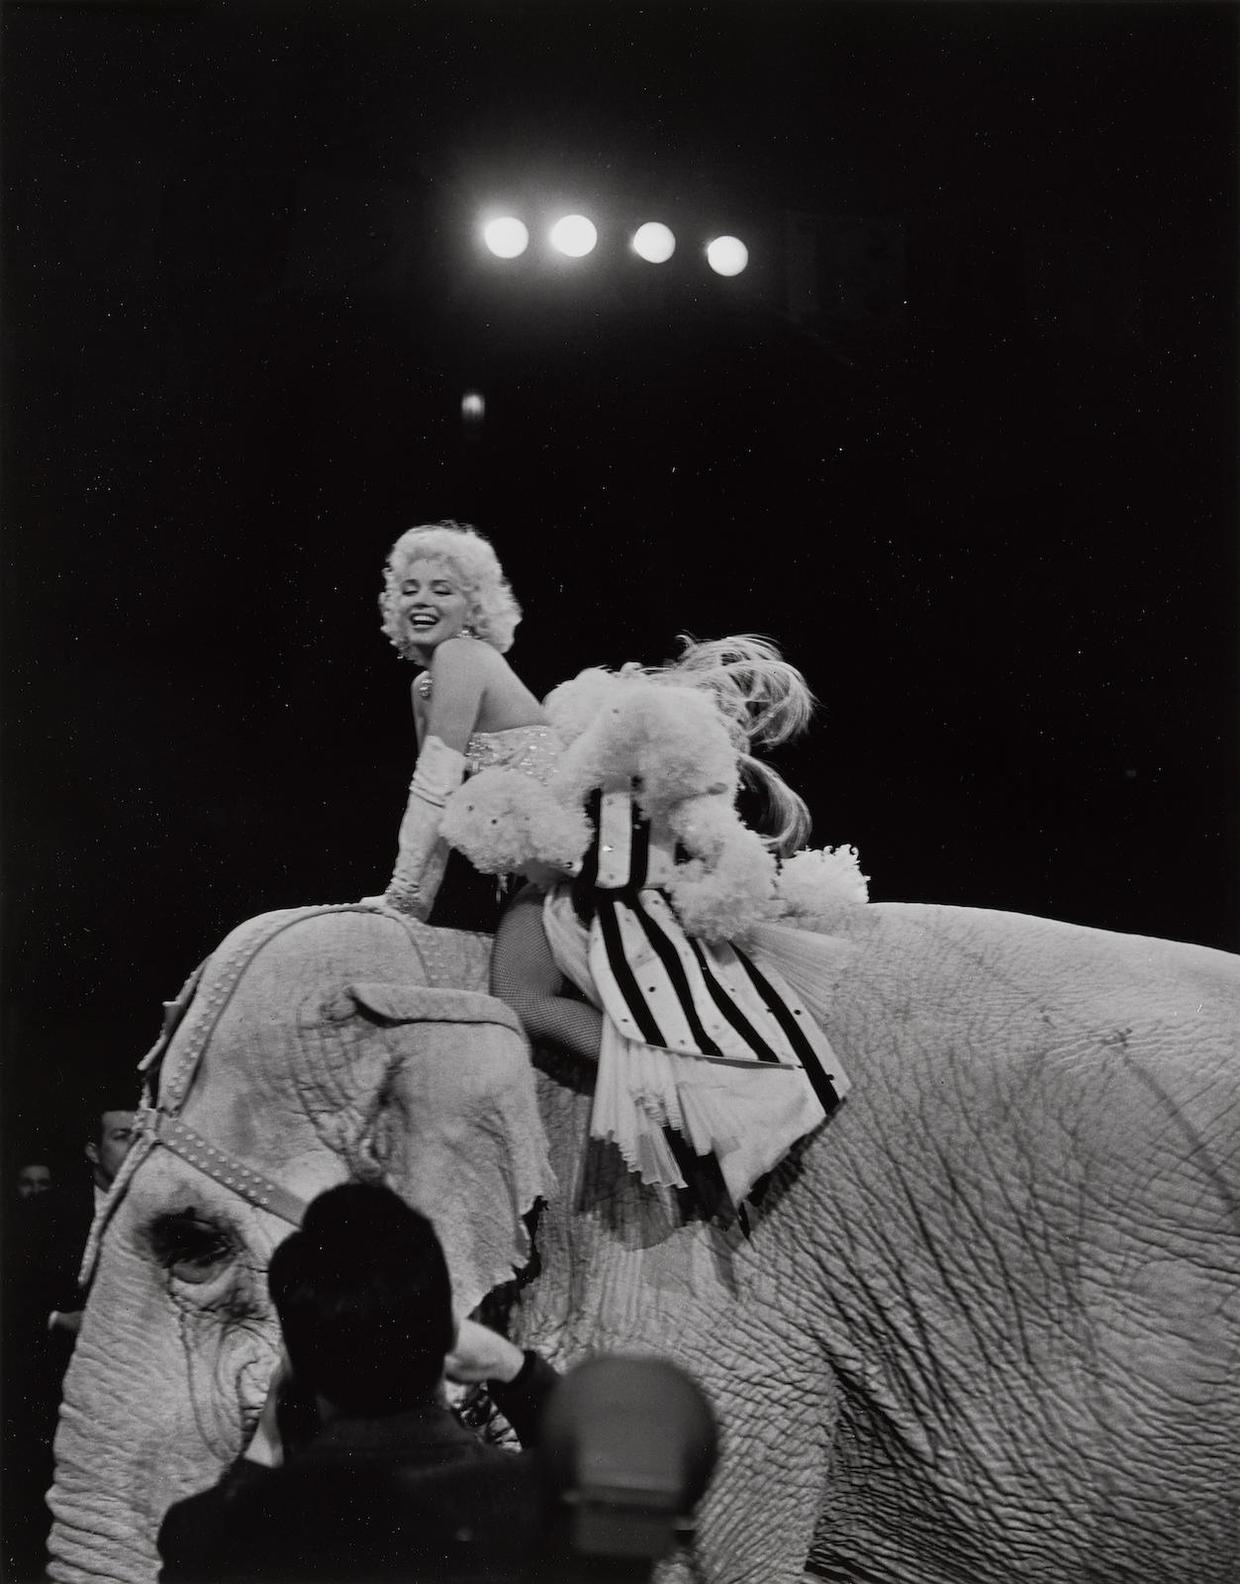 Erika Stone - Marilyn Monroe Riding A Pink Elephant At The Opening Of Ringling Brothers Circus, Madison Square Garden, New York City, March 30-1955